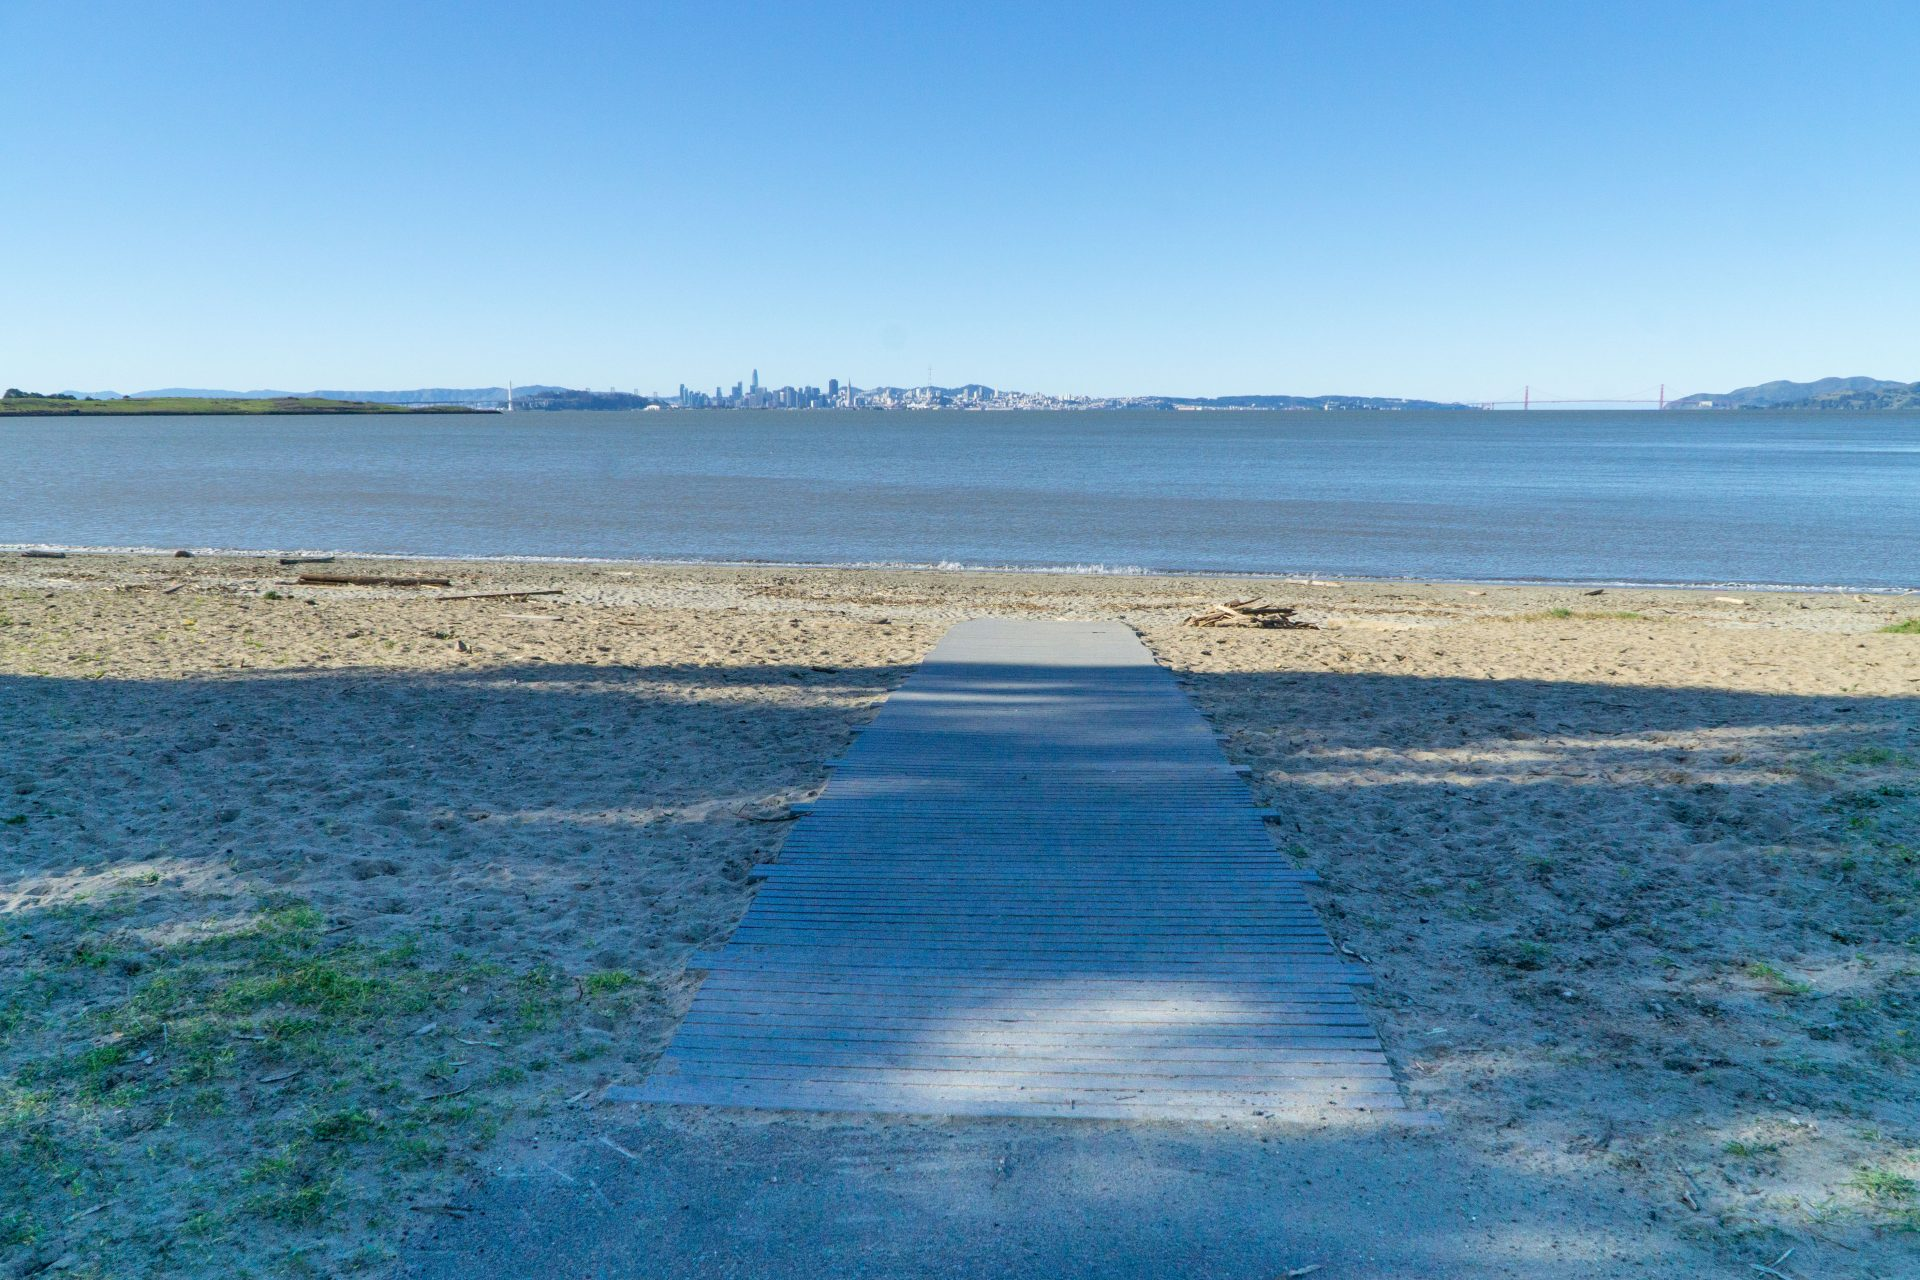 wood gangway over beach to bay, golden Gate in far distance